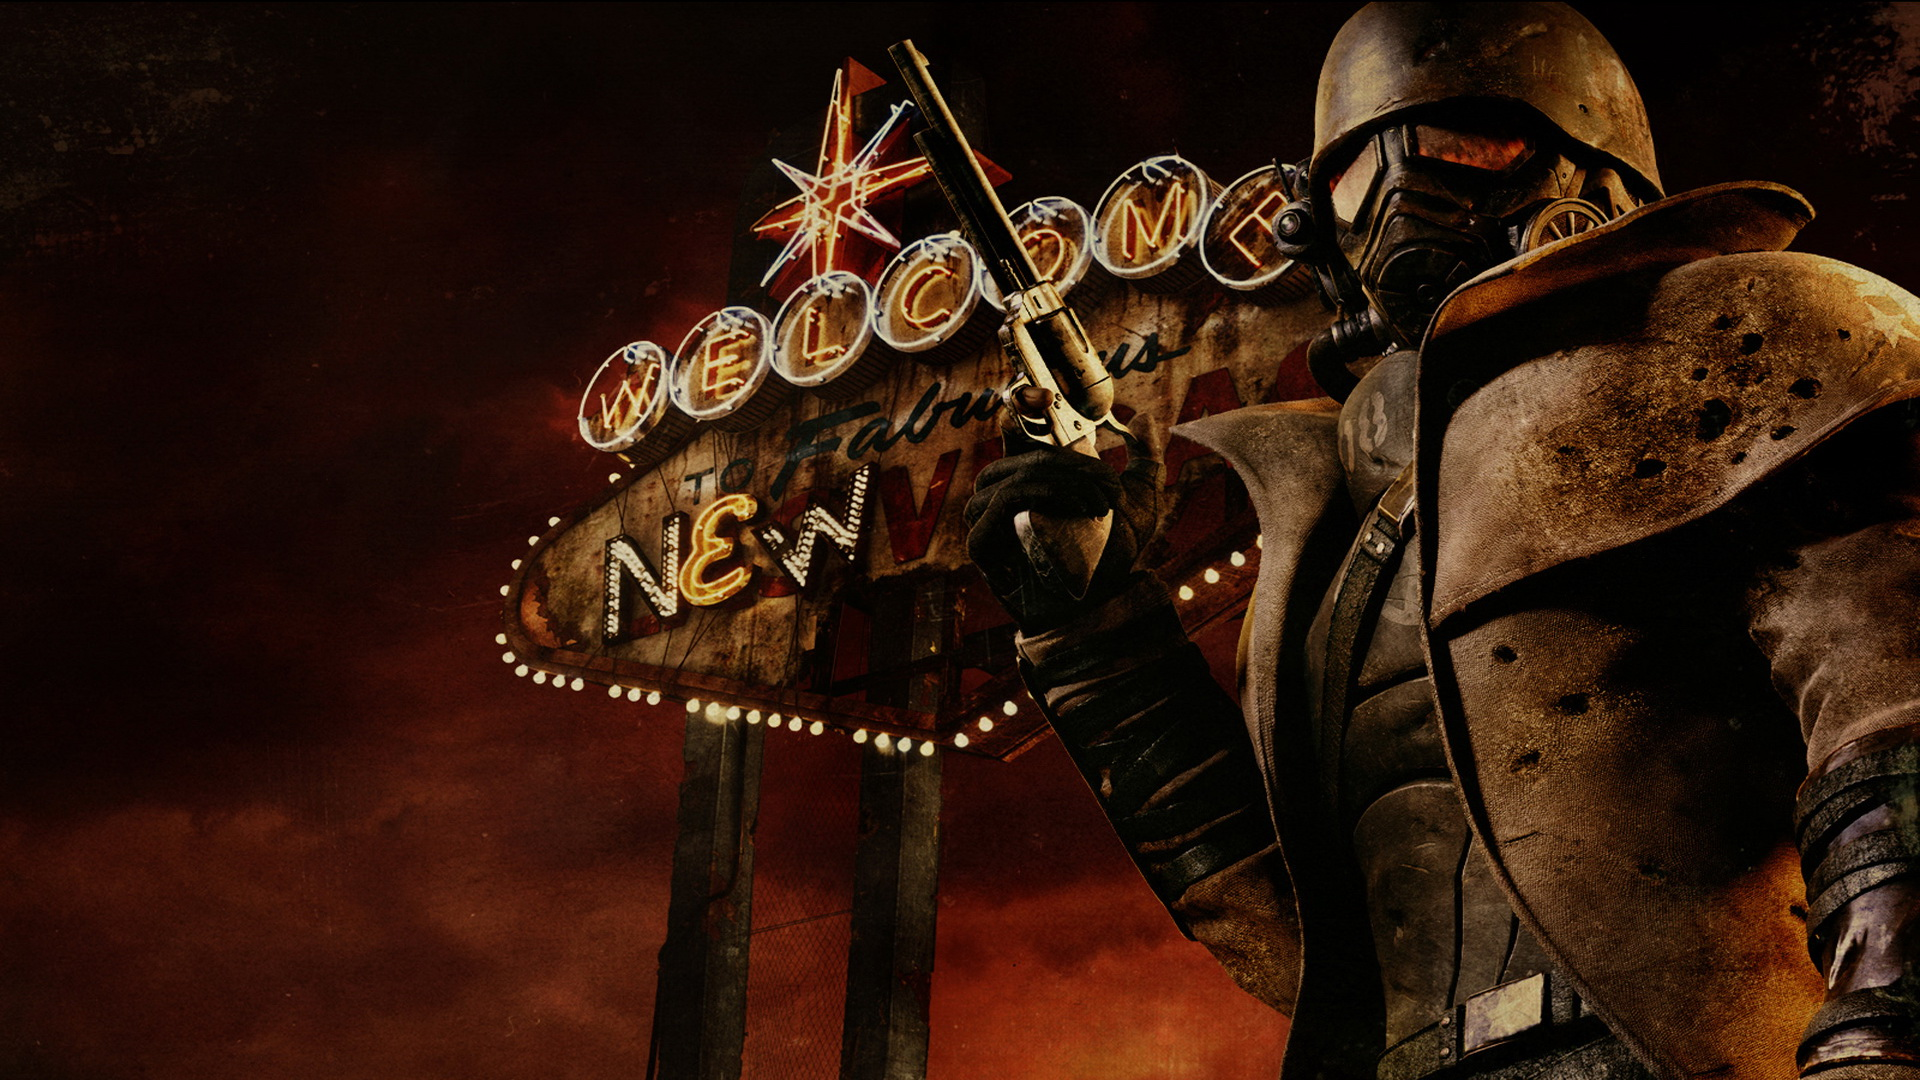 Fallout New Vegas Wallpaper 1080p - WallpaperSafari